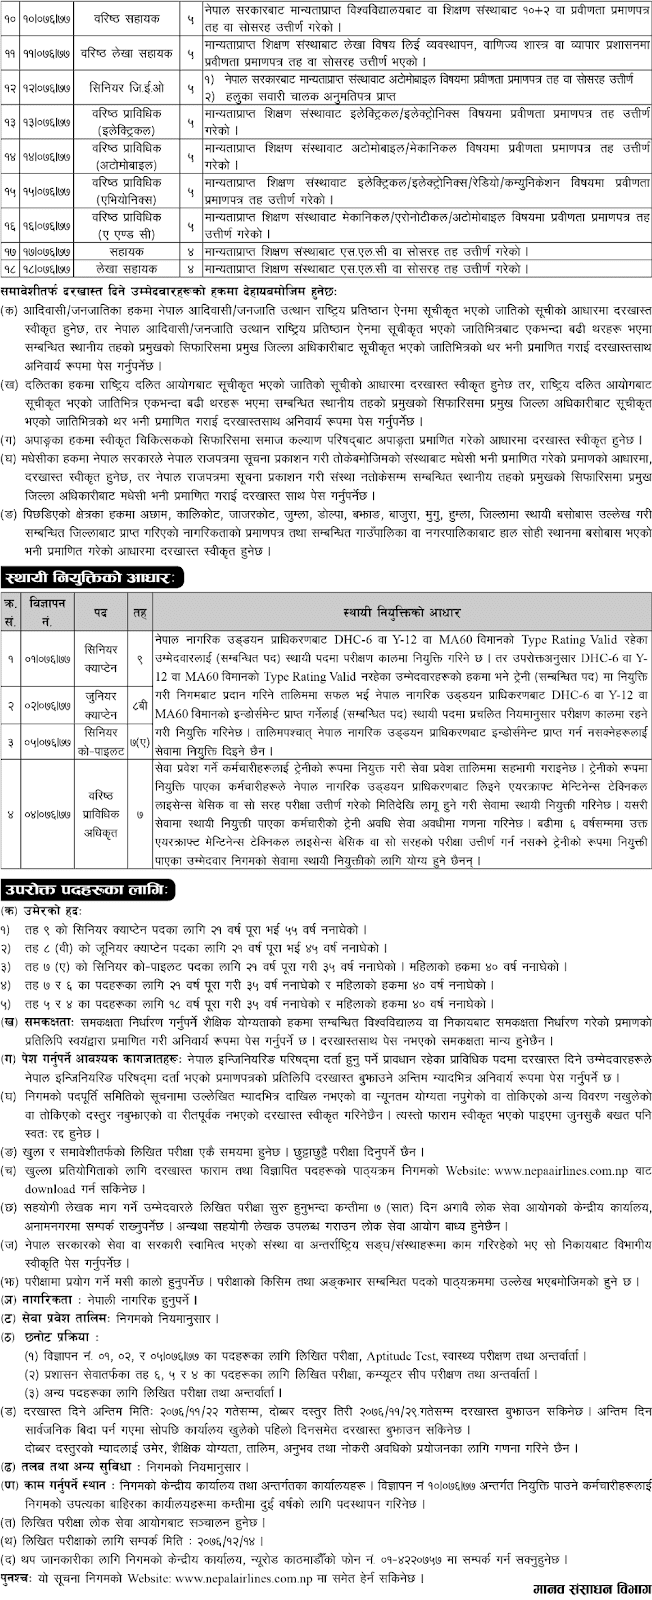 Nepal Airlines Corporation Vacancies for Various Position